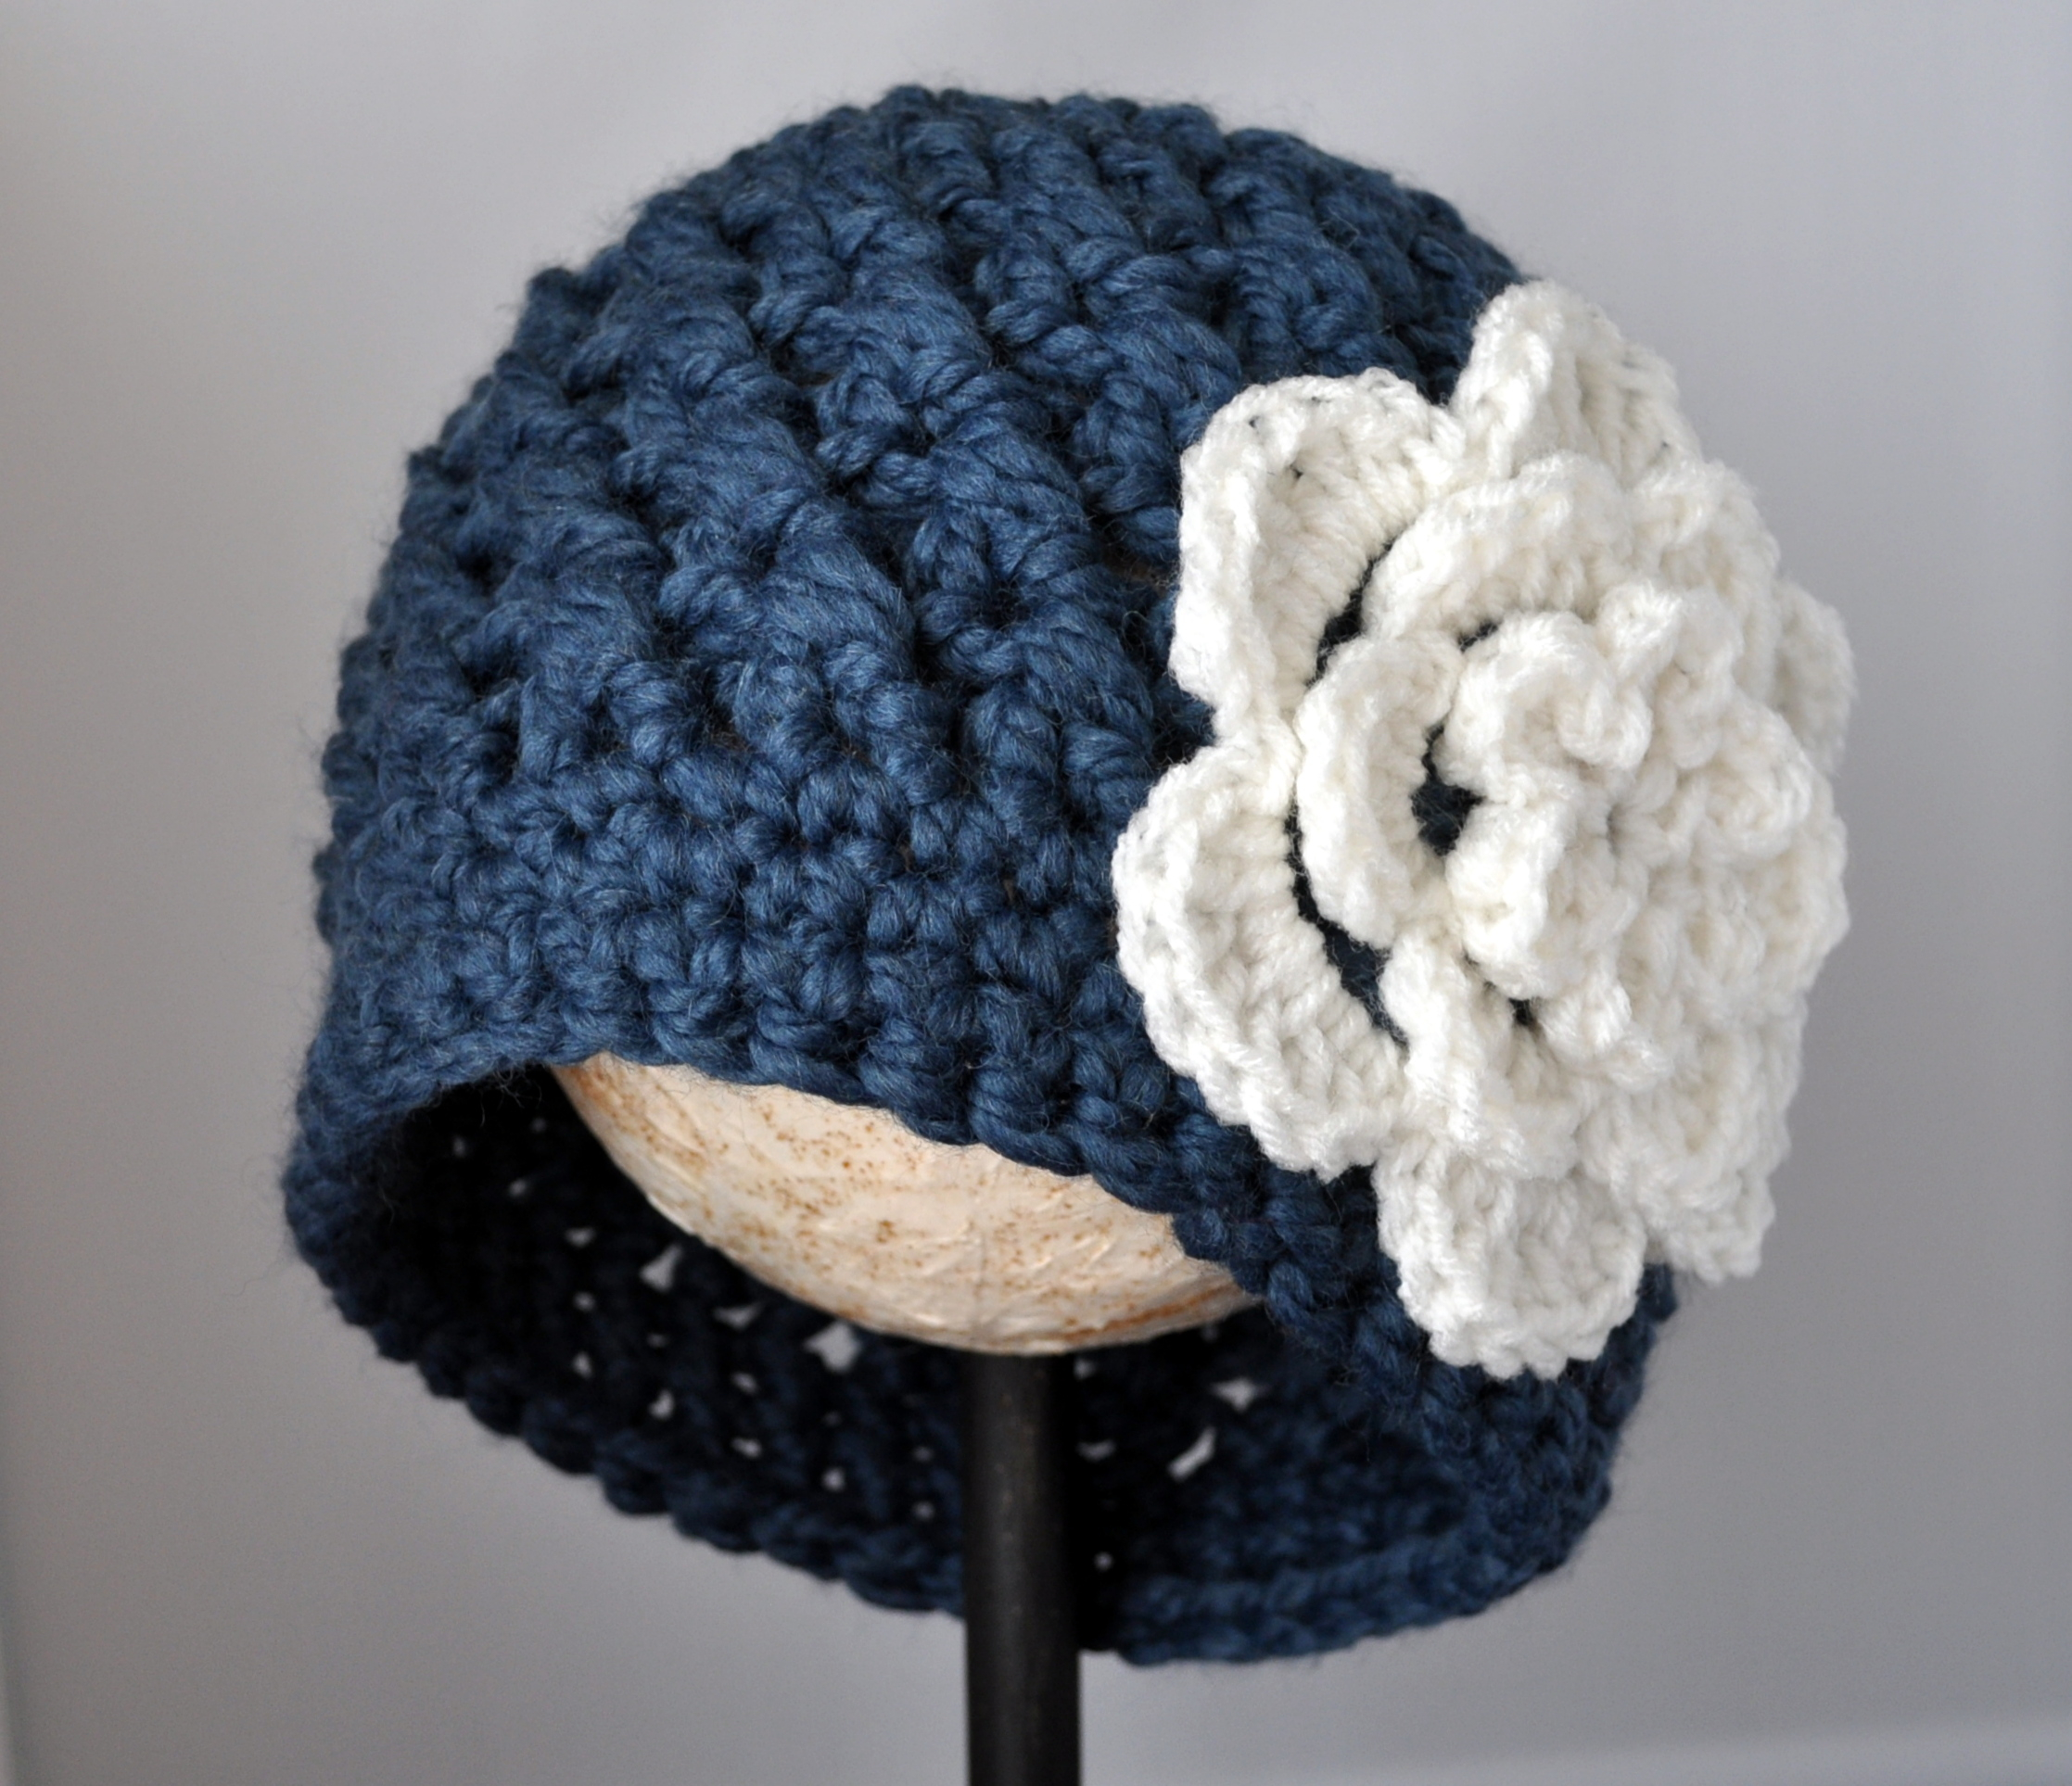 Best Products to Make with the Chunky Yarn Crochet Pattern Crochet Chunky Flowered Cloche Pattern Classy Crochet